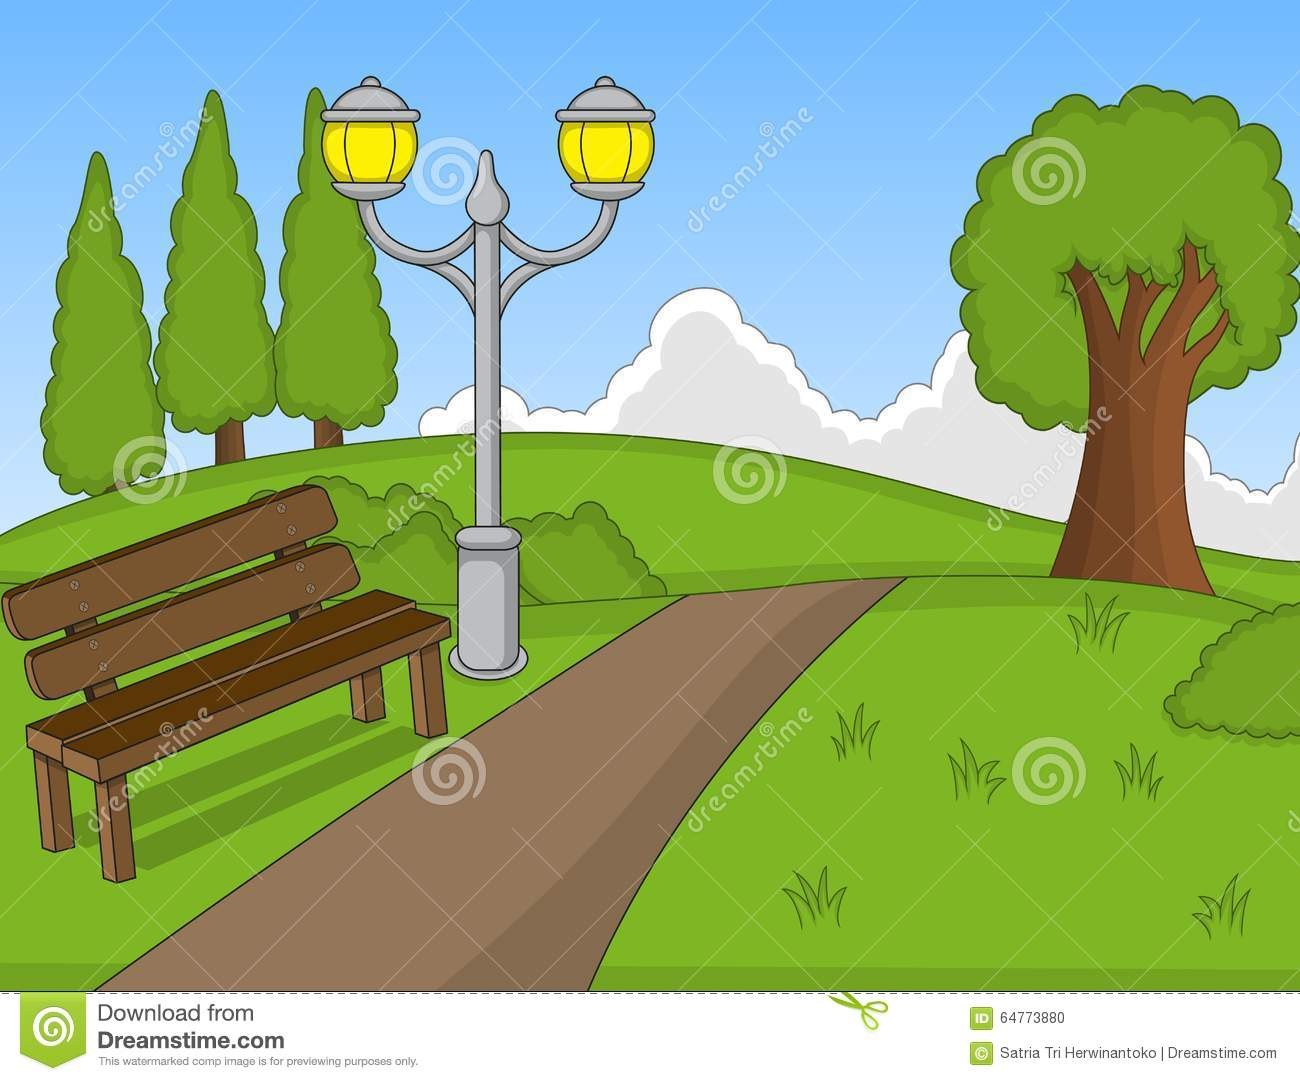 Park Cartoon With Bench Stock Vector - Image: 64773880